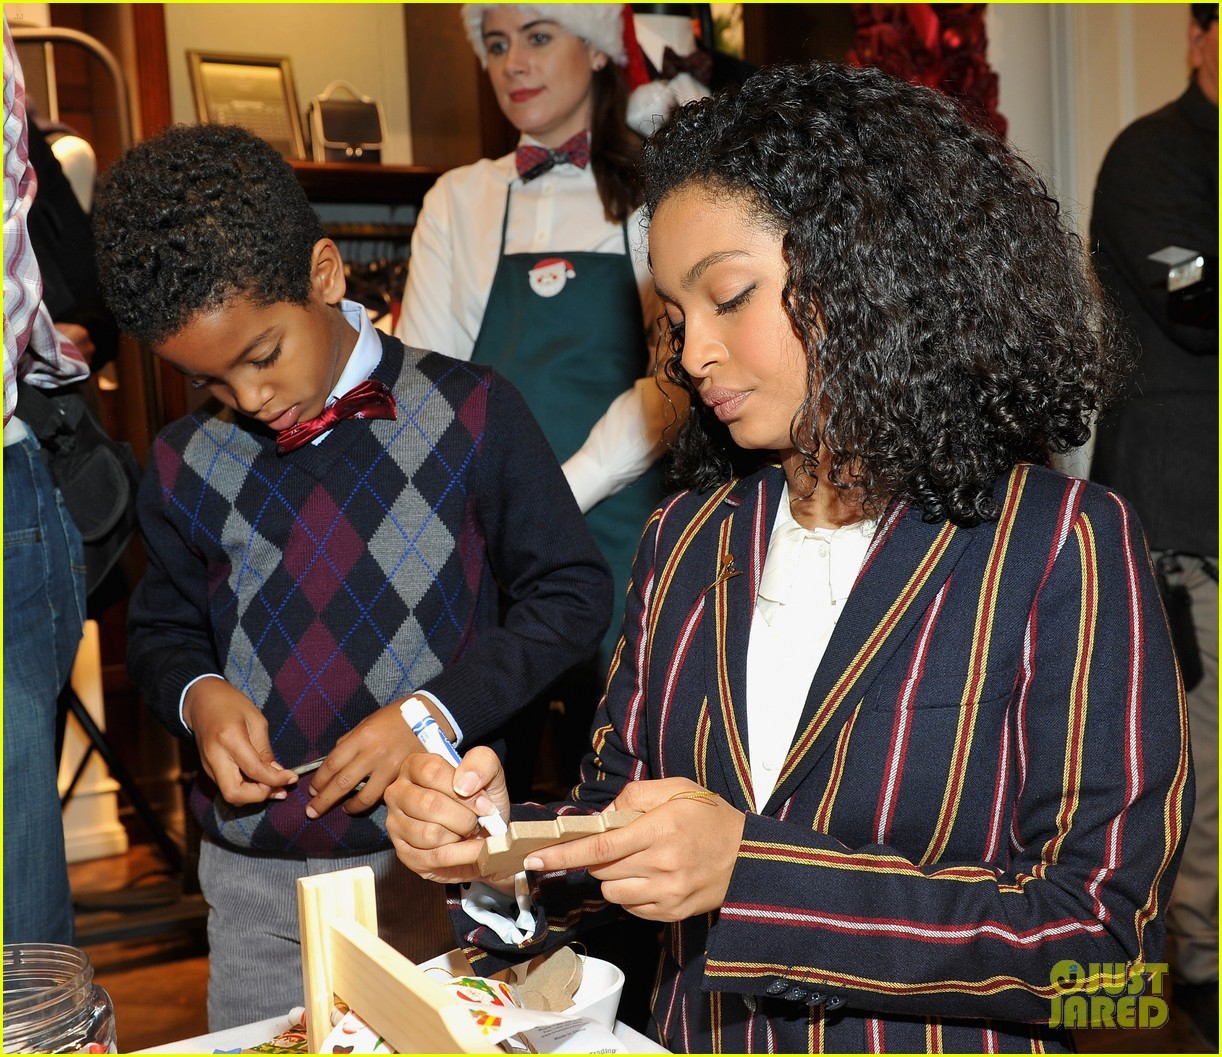 Camilla Belle, Jesse Metcalfe & Cara Santana Make Holiday Ornaments At  Brooks Brothers' Holiday Party For St Jude: Photo 3523983  Abigail  Spencer,